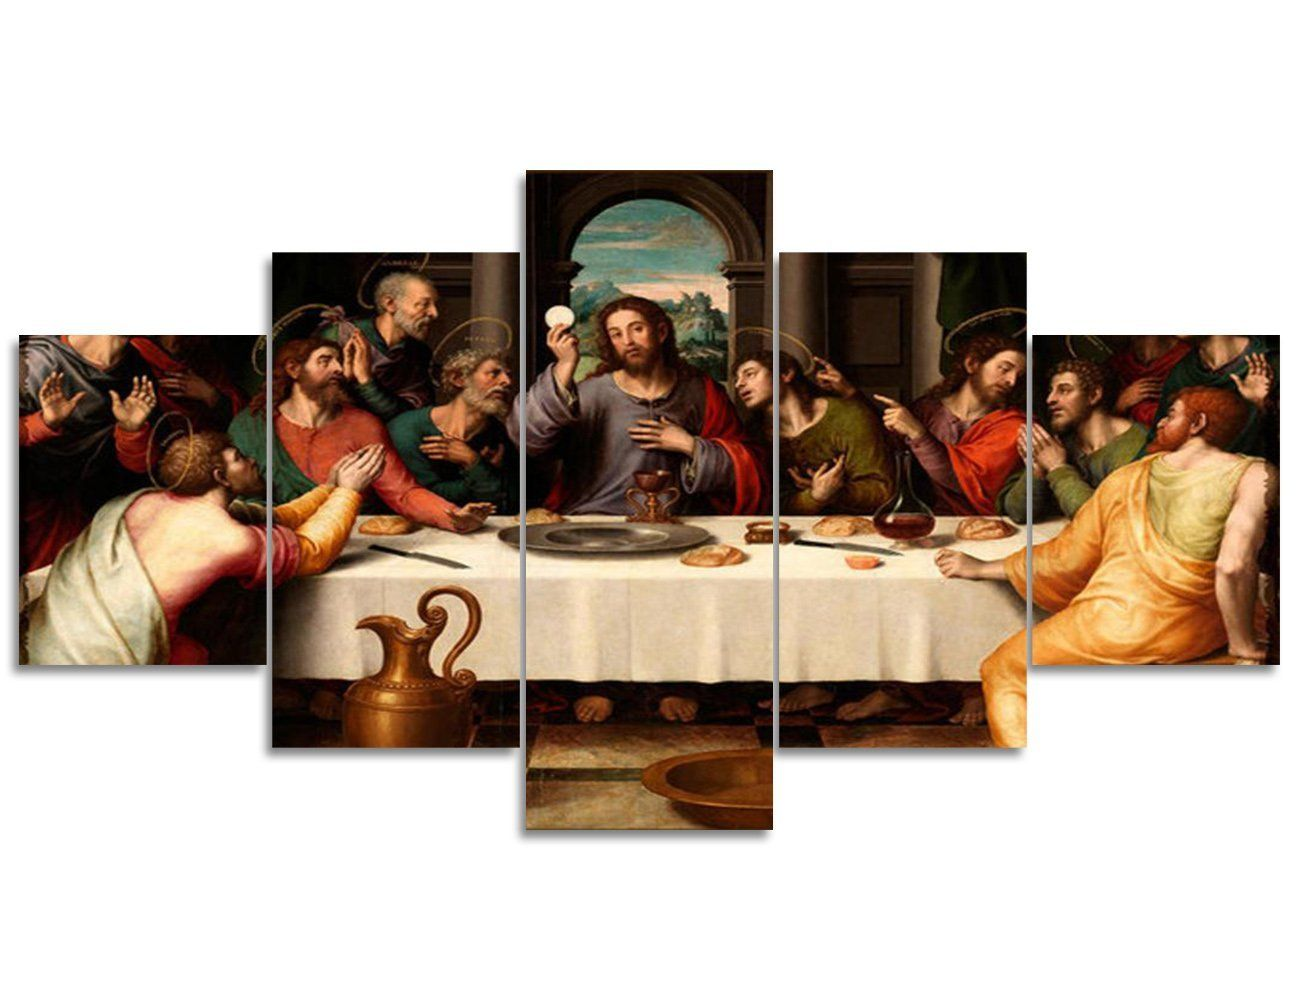 Jesus The Last Supper Wall Art Canvas Prints Art Home Decor For Living Room Modern Pictures Pictures 5 Panel Large H Canvas Art Prints Painting Frames Wall Art